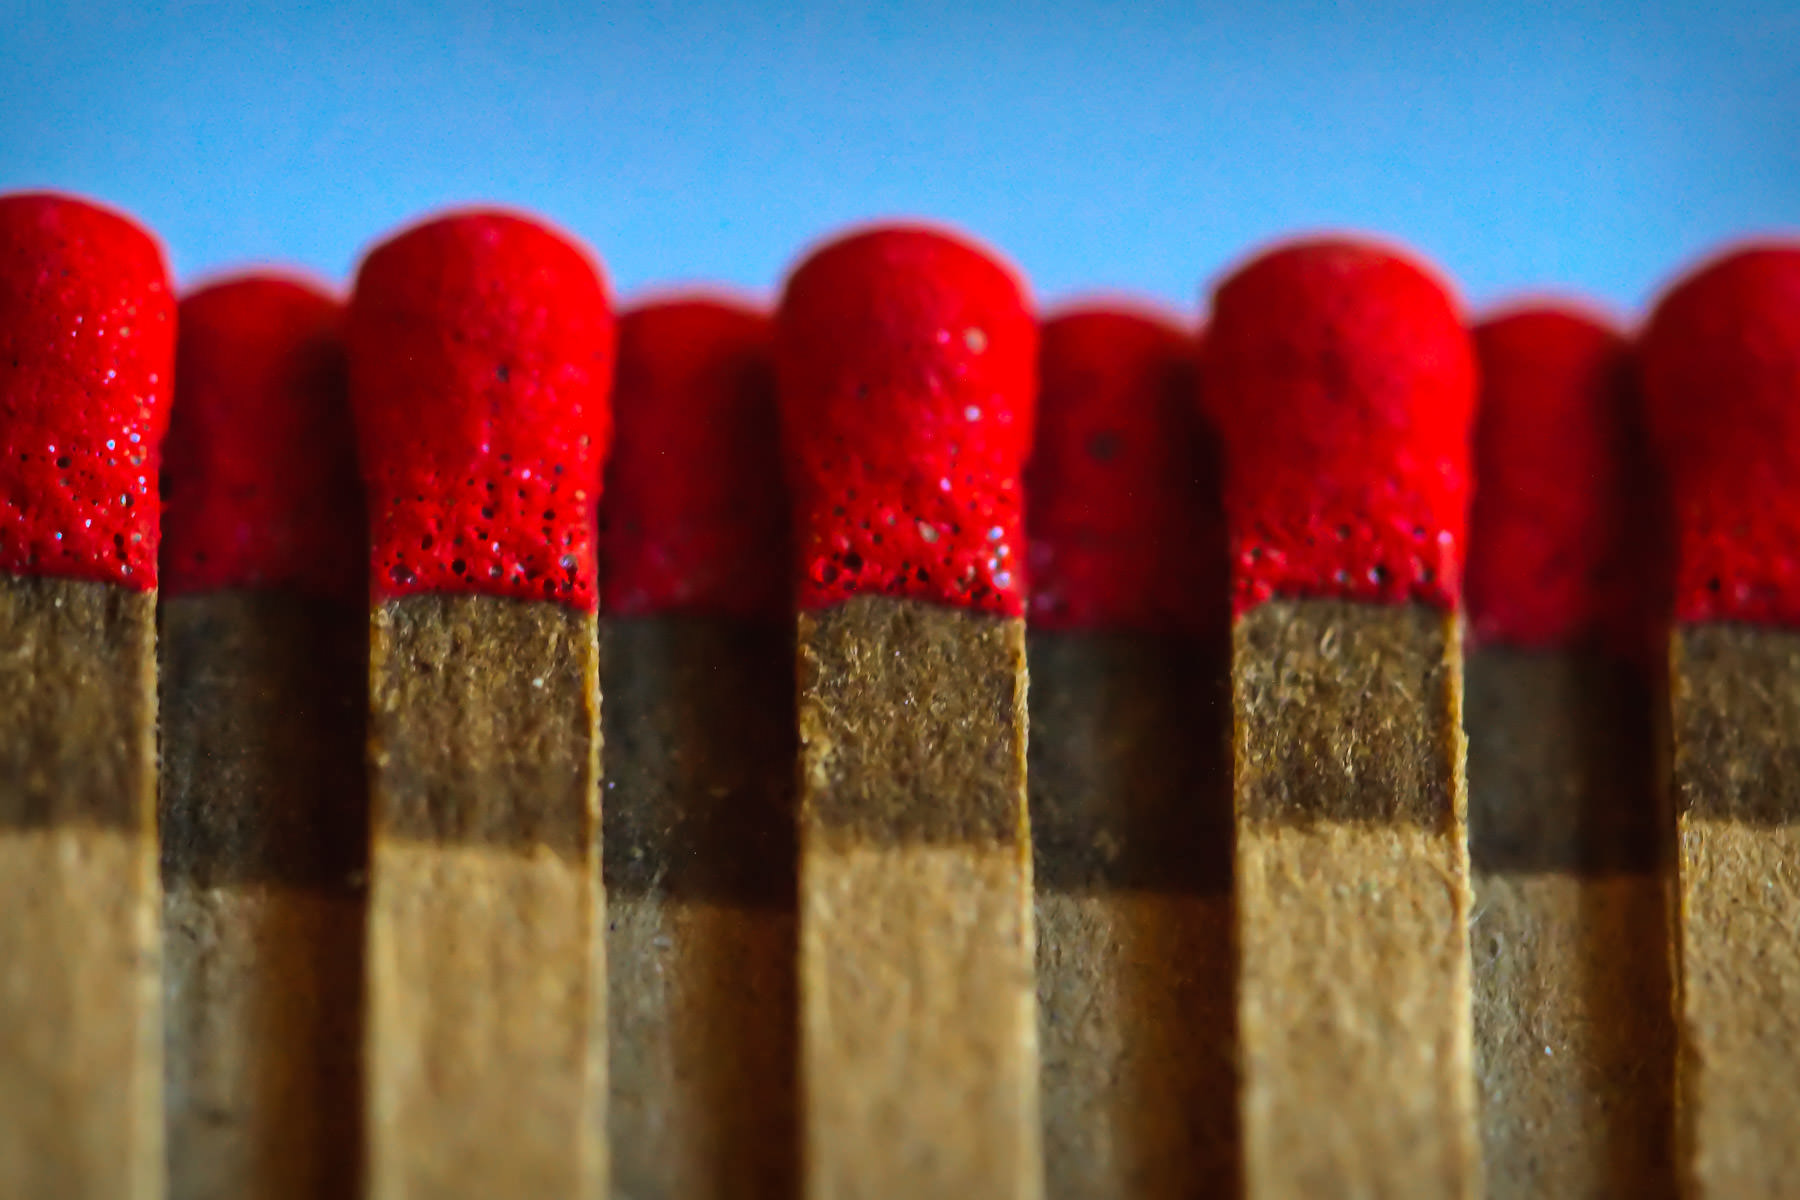 A macro photo of match heads.